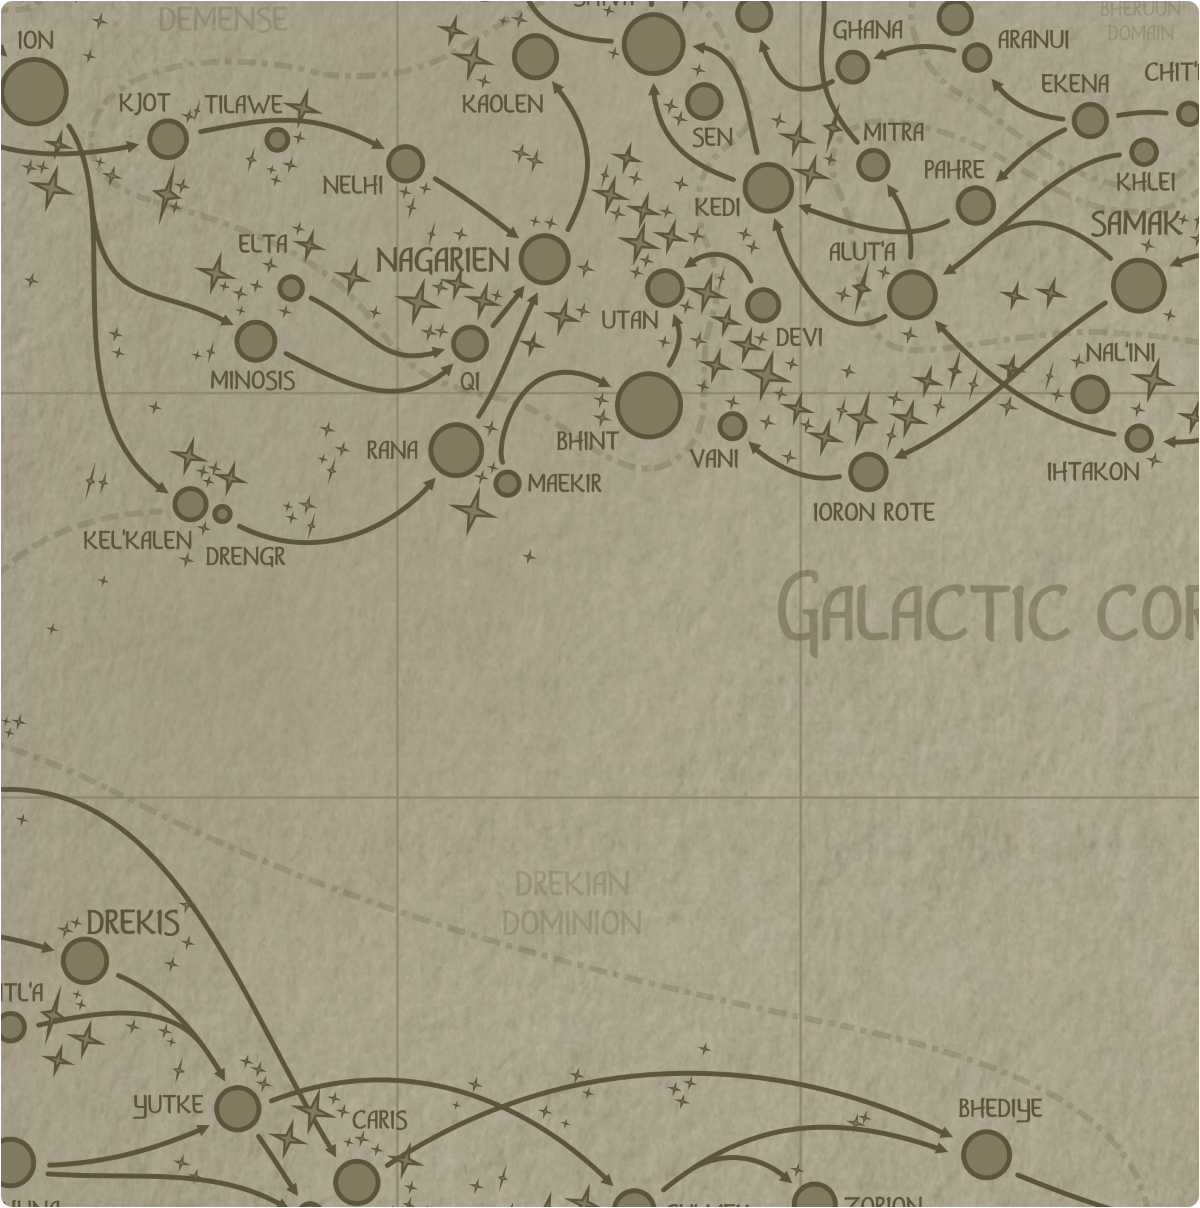 A paper map of galactic Sector K8